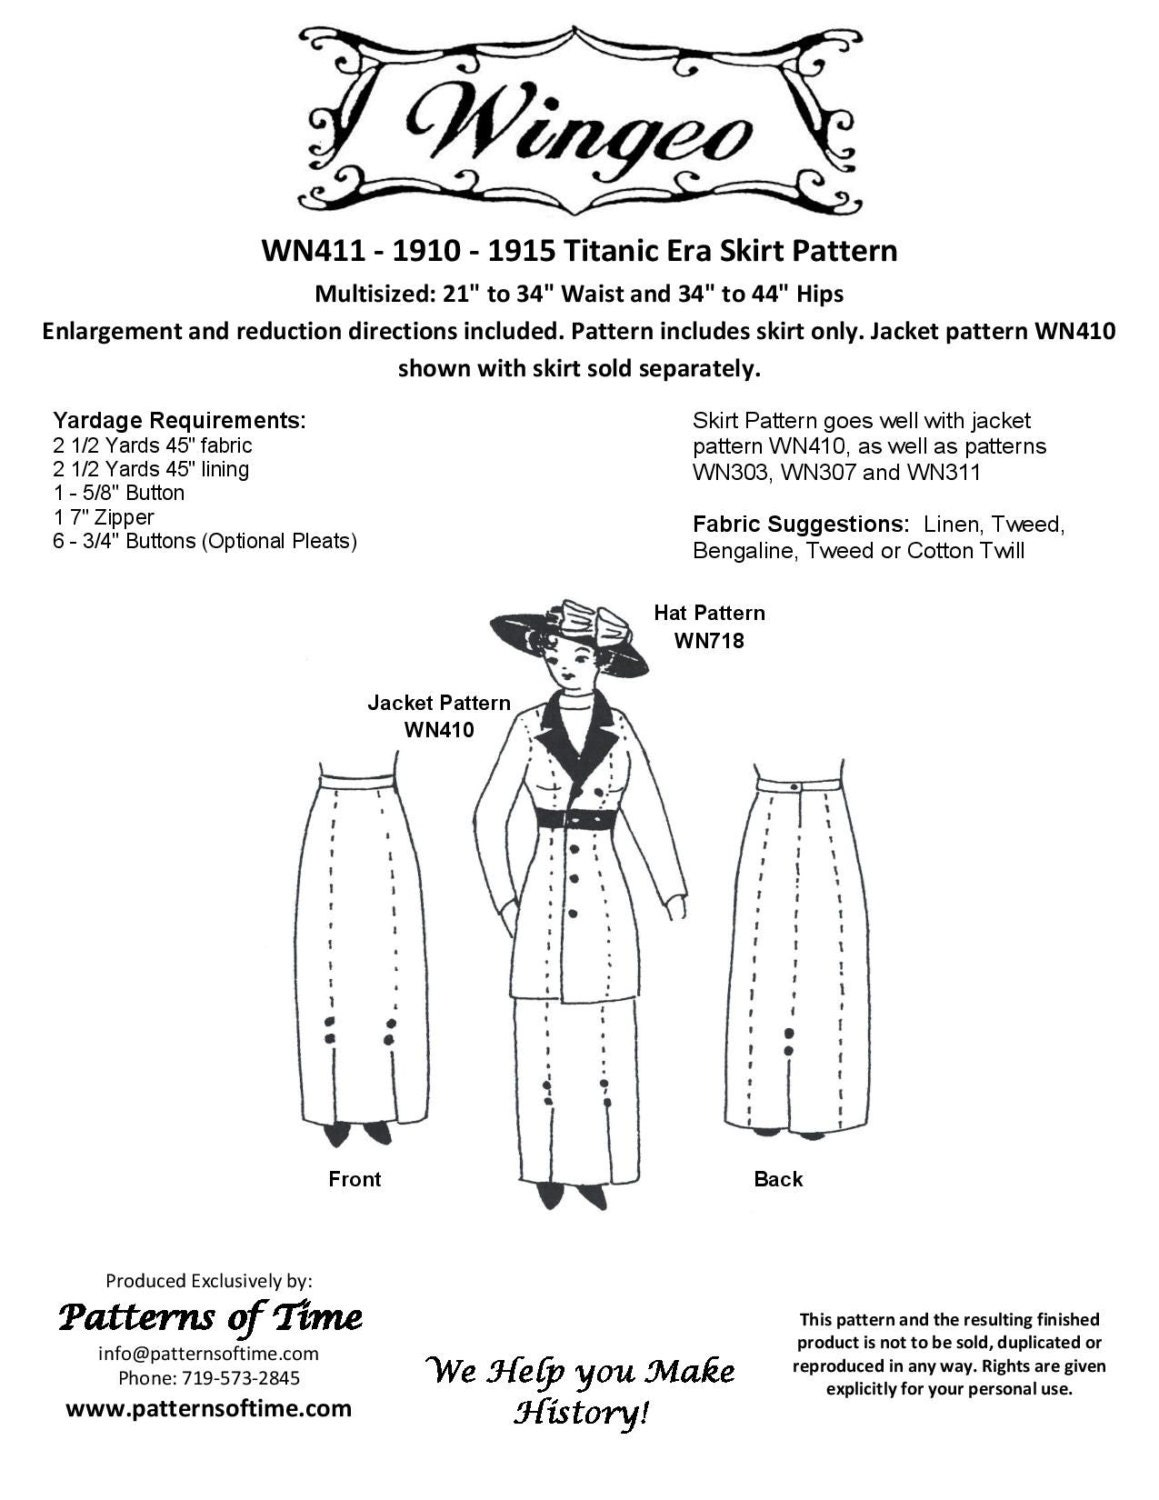 WN411 1910 1915 Skirt Sewing Pattern by Wingeo | Etsy